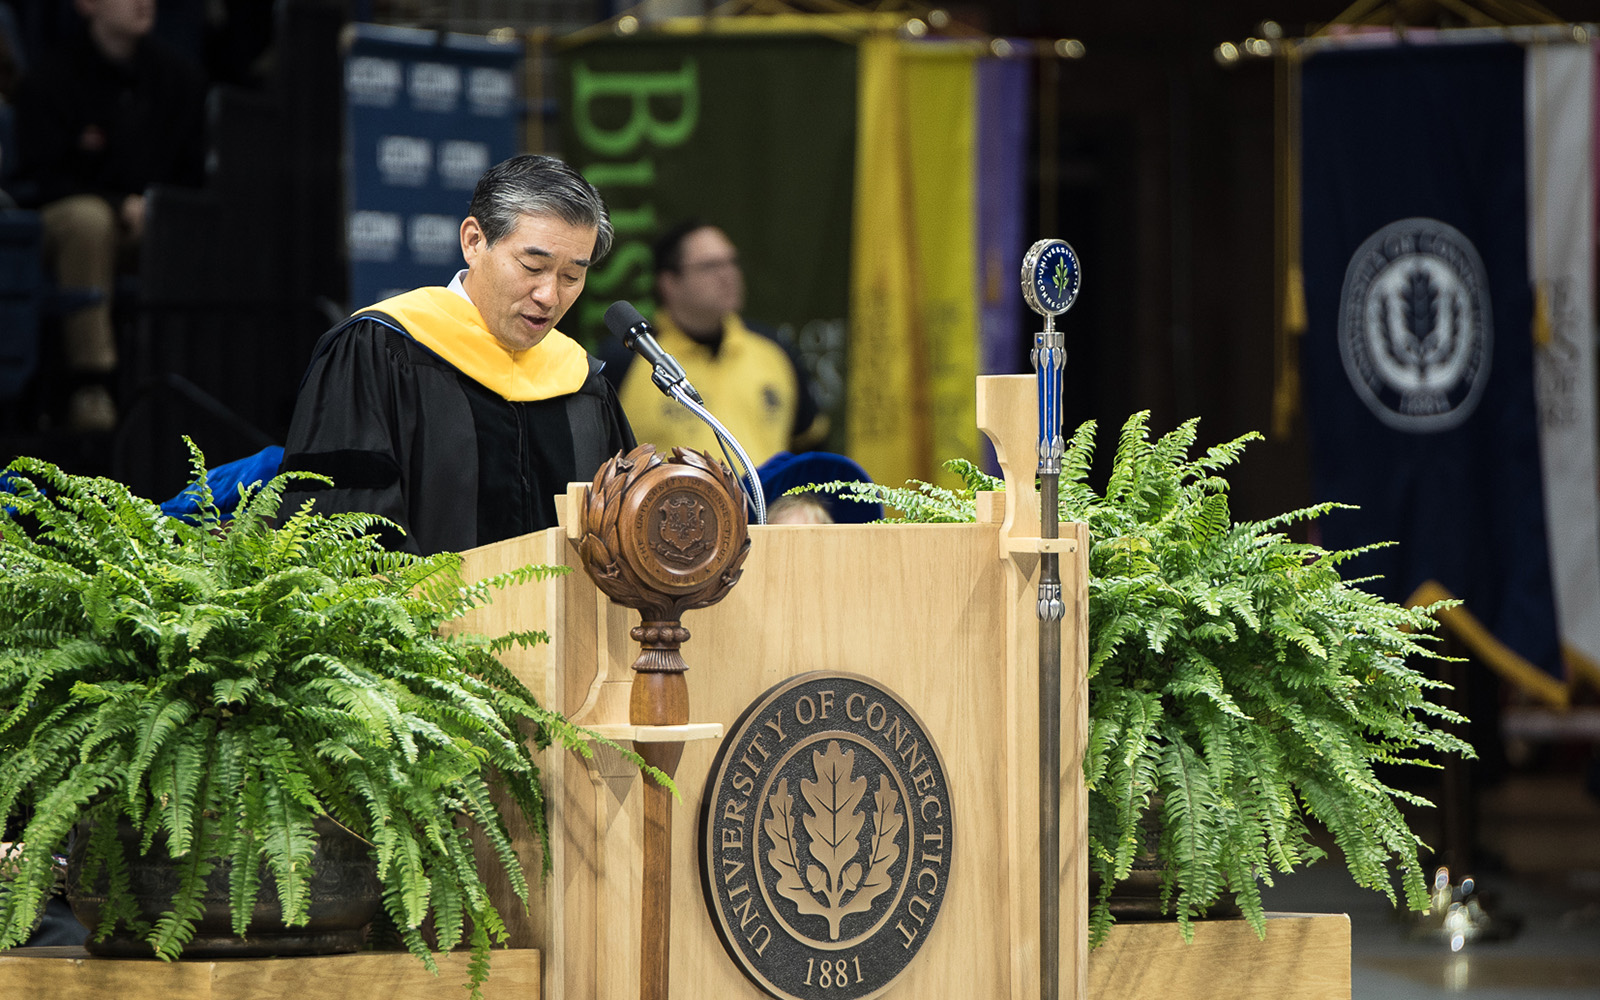 John Y. Kim '87 MBA, president and CIO of New York Life, offers advice to School of Business graduates during commencement on May 8. (Nathan Oldham/UConn School of Business)